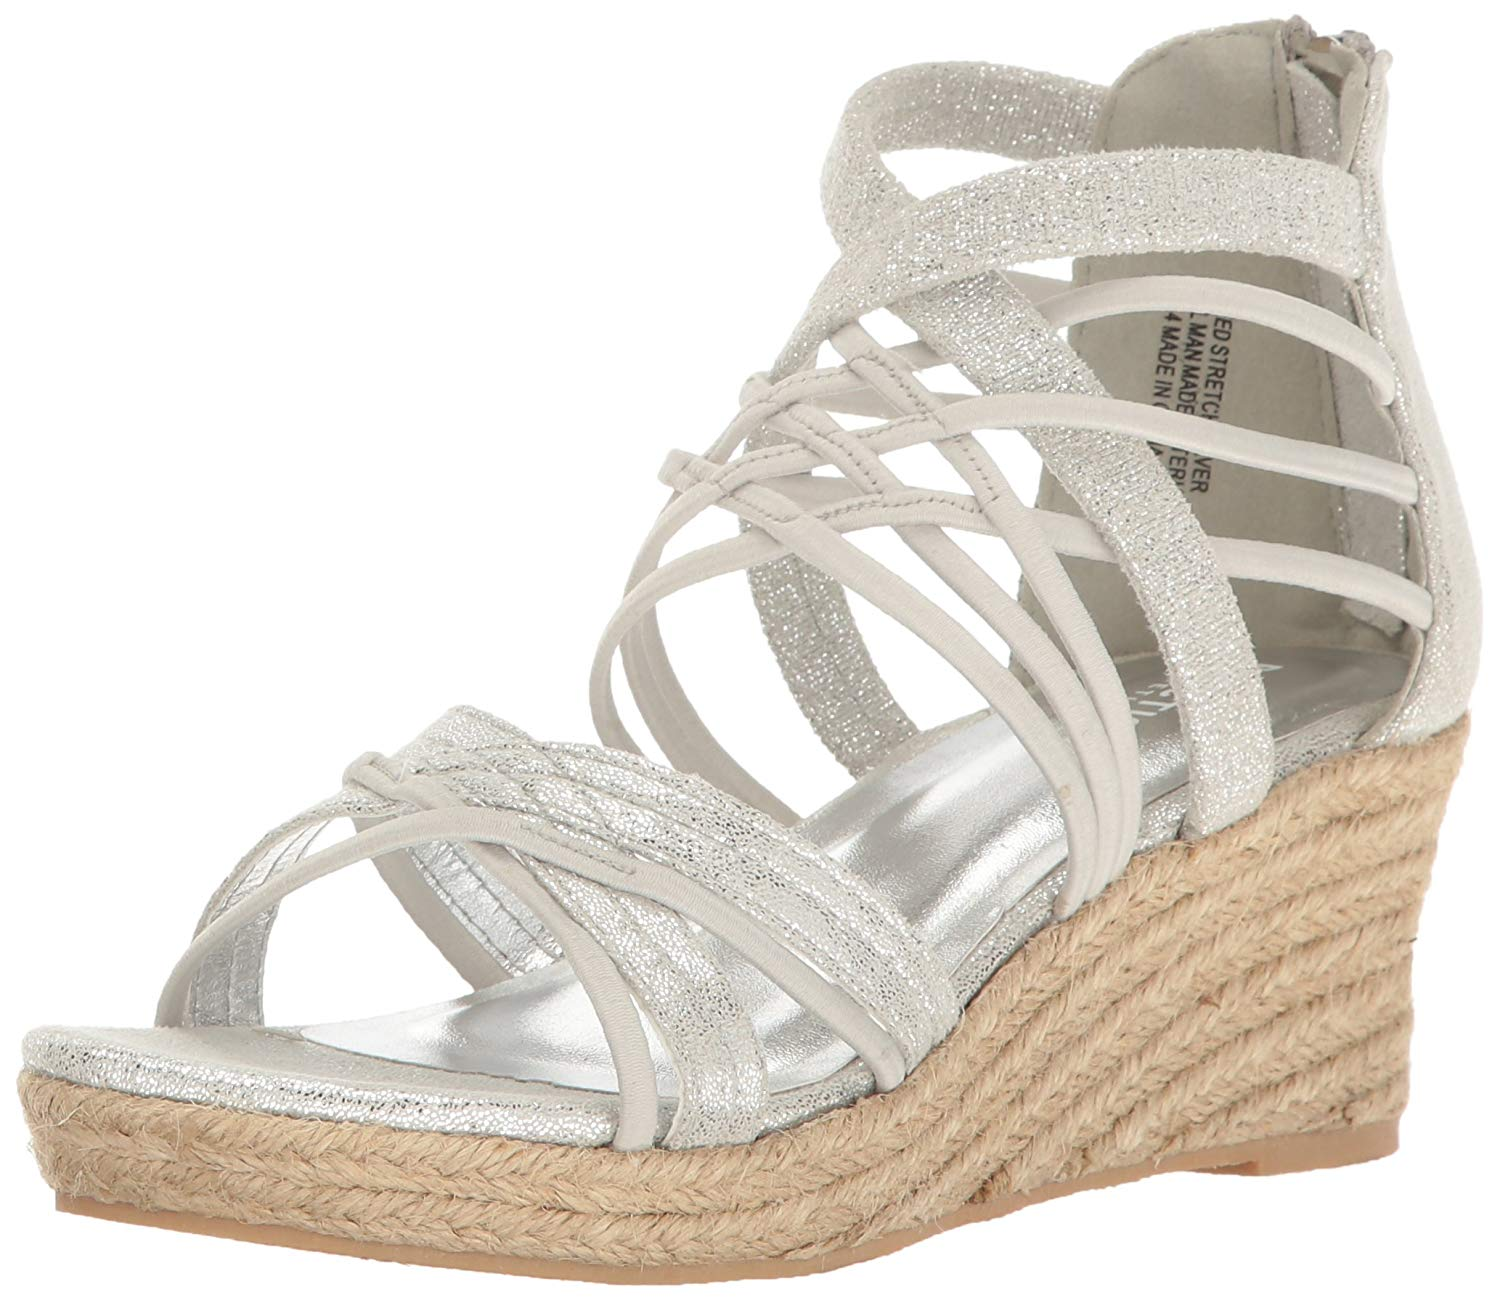 Kenneth Cole Reaction Reed Stretch Girls Sandales 0 Silver 0 Sandales  US /  M b02c51